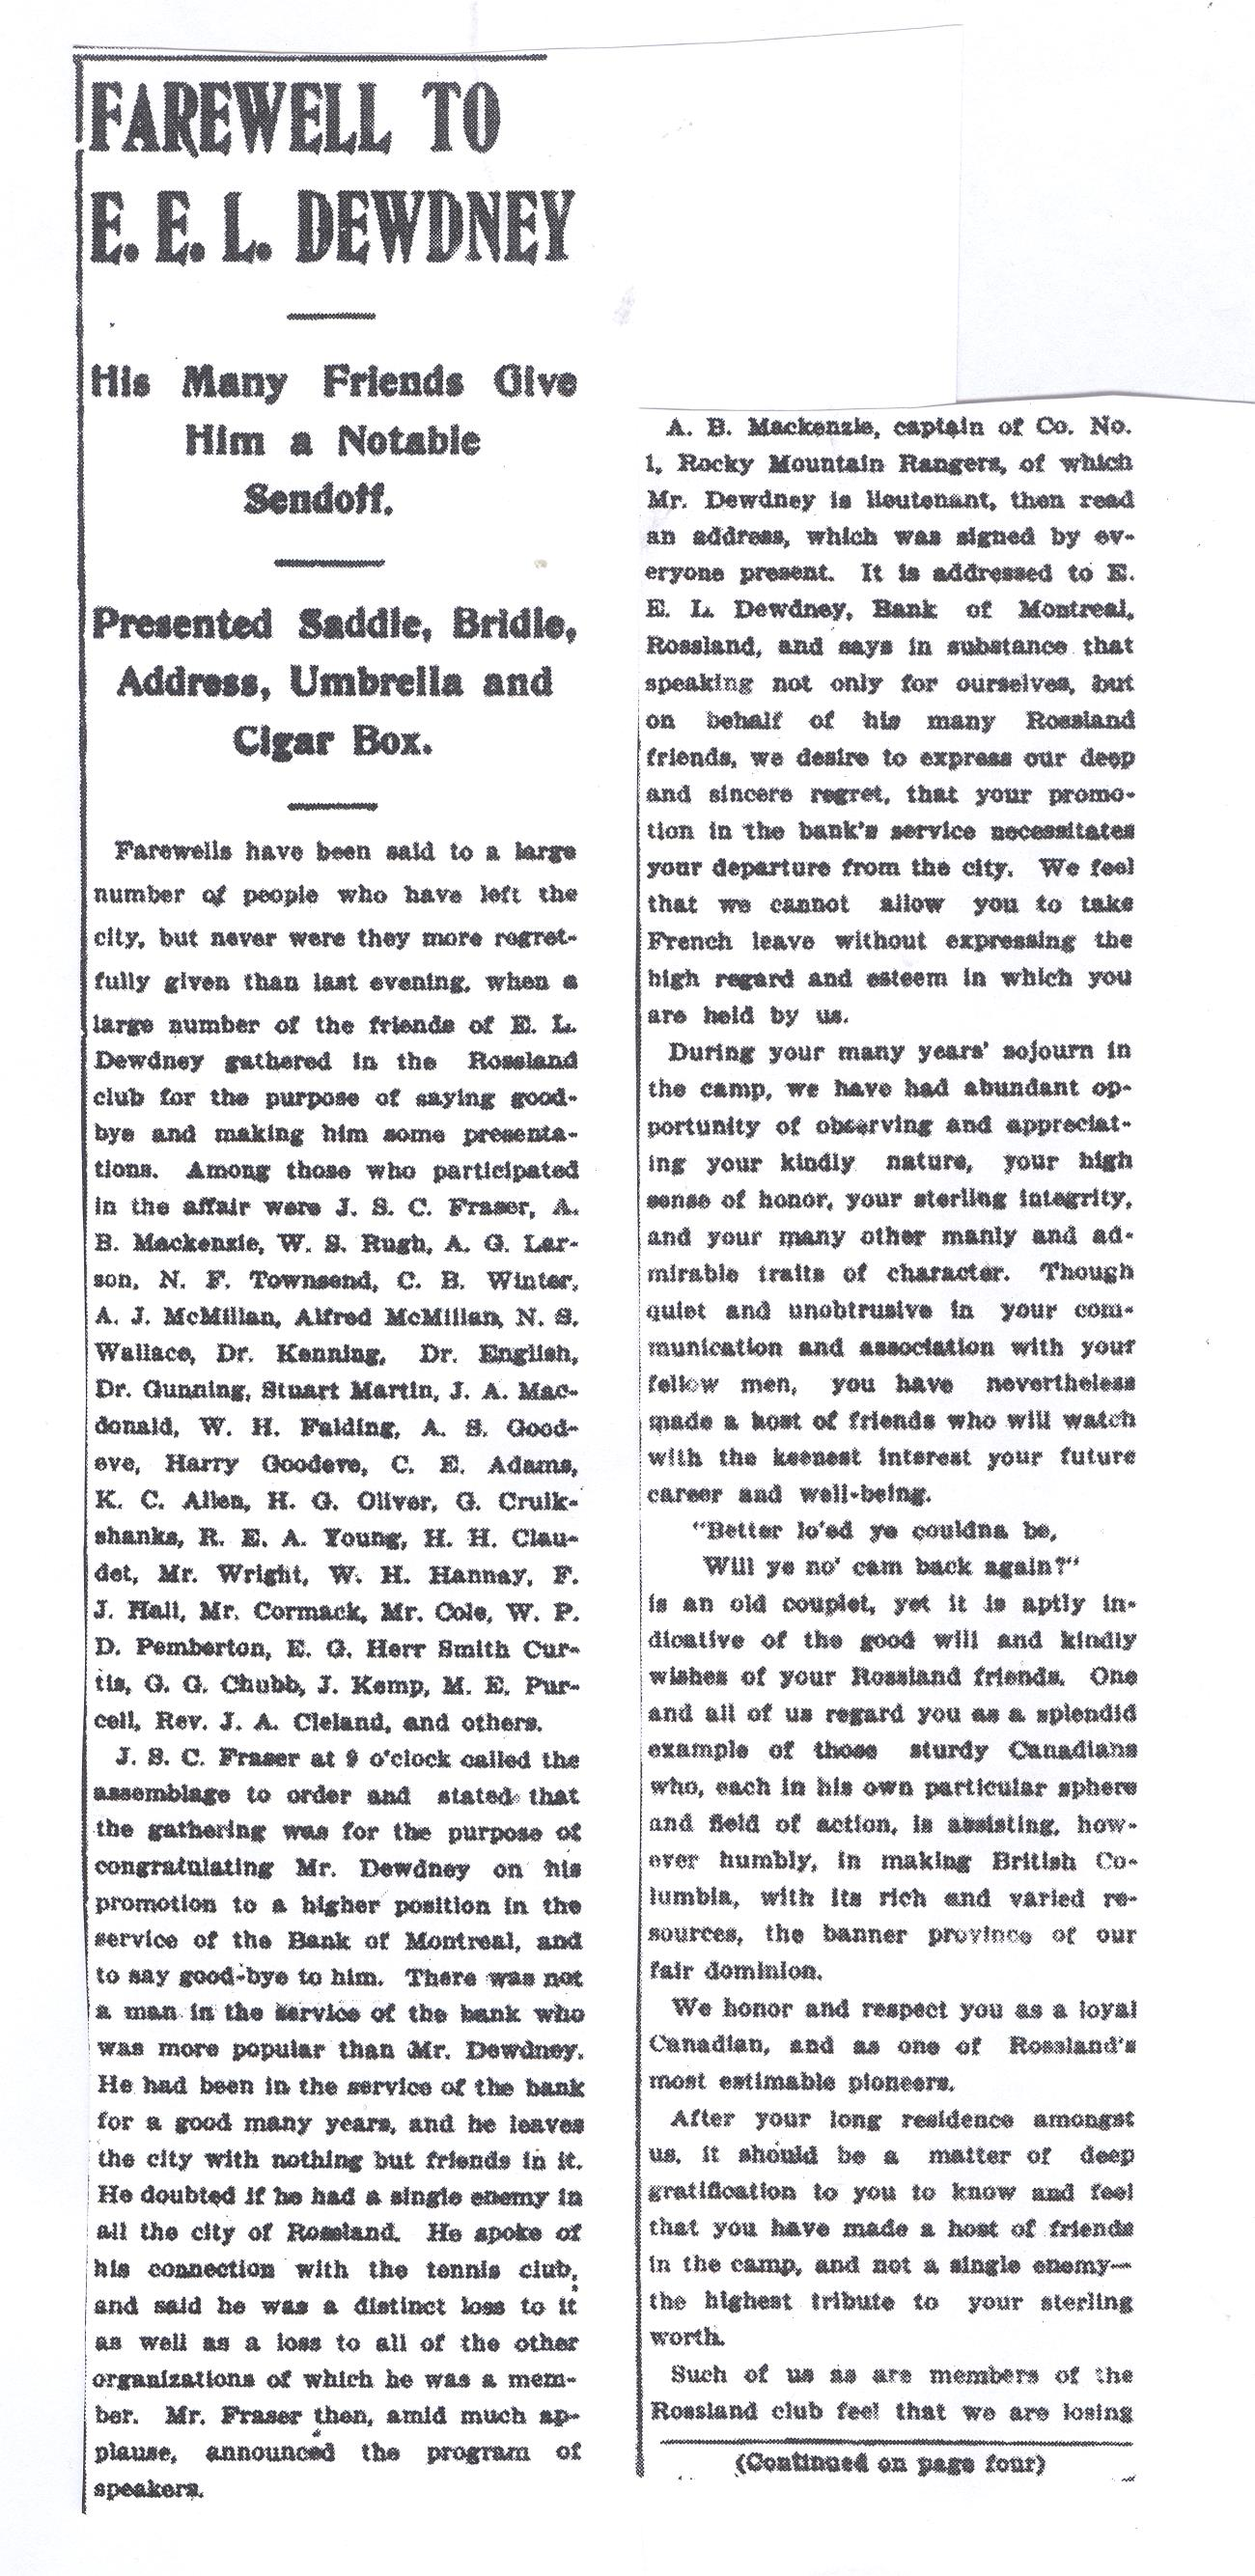 farewell report rossland miner aug 3 1907 page 1 001 (1)